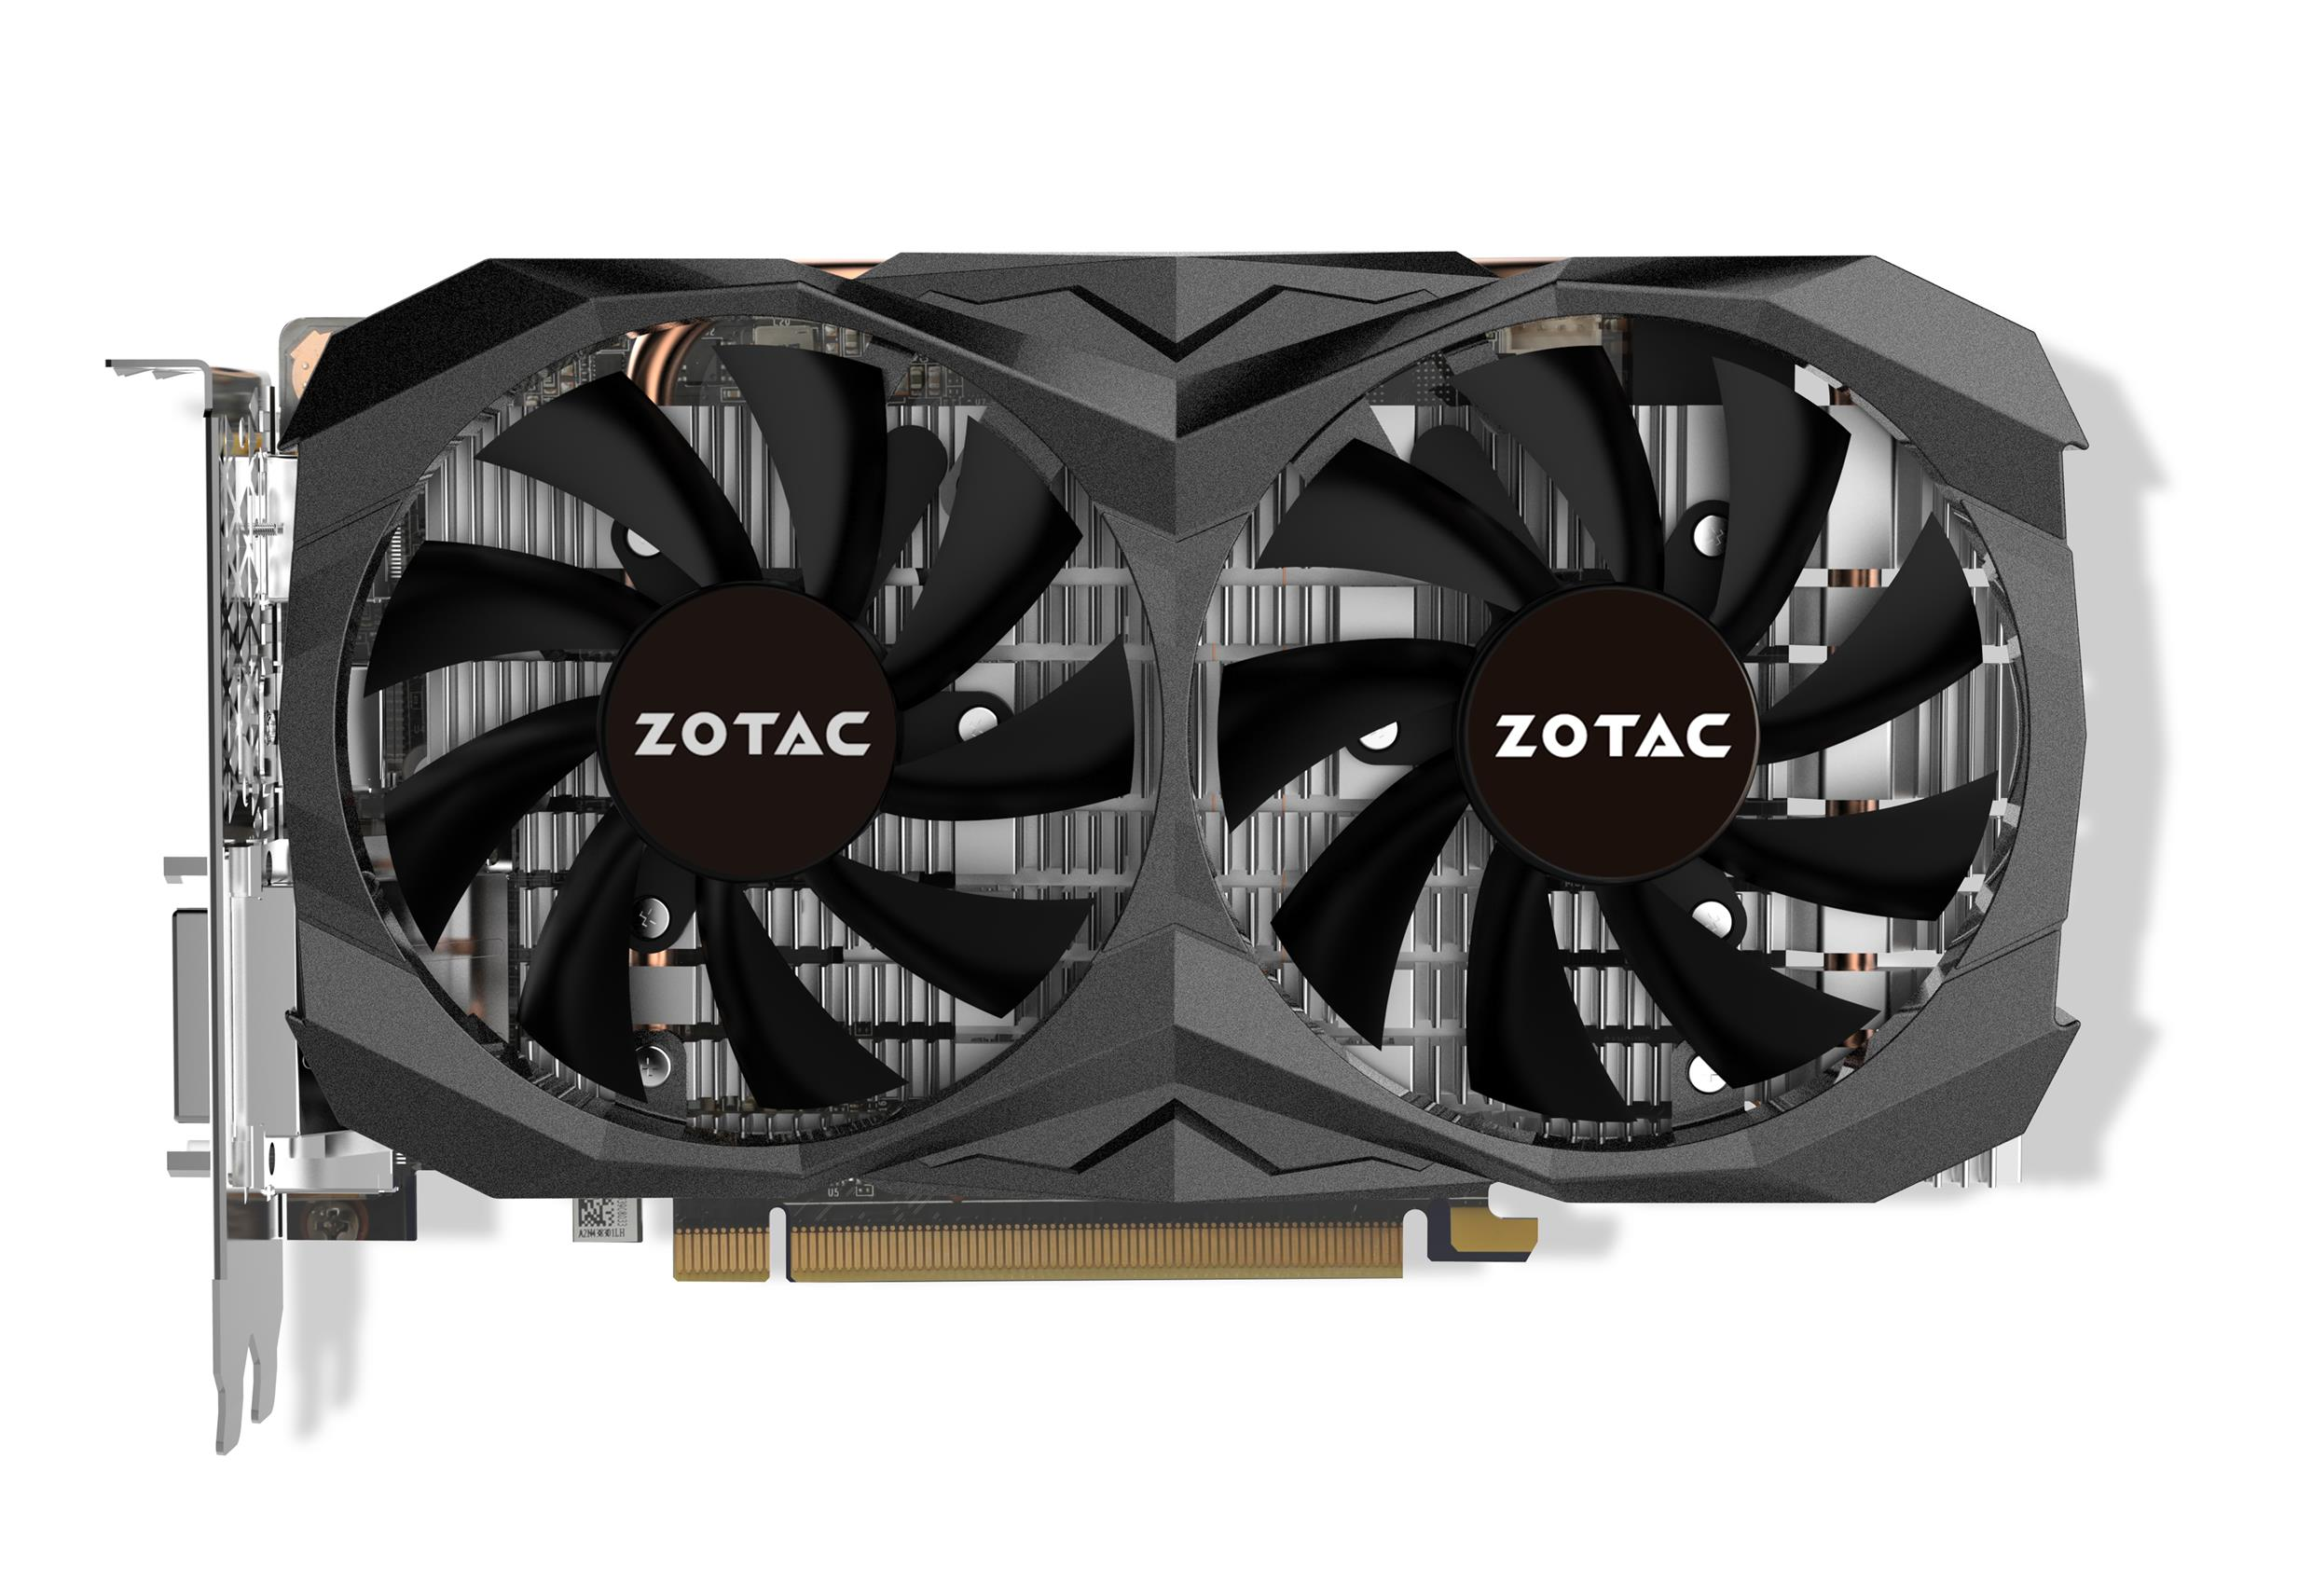 ZOTAC GeForce GTX 1060 AMP Core Edition 1797 MHz